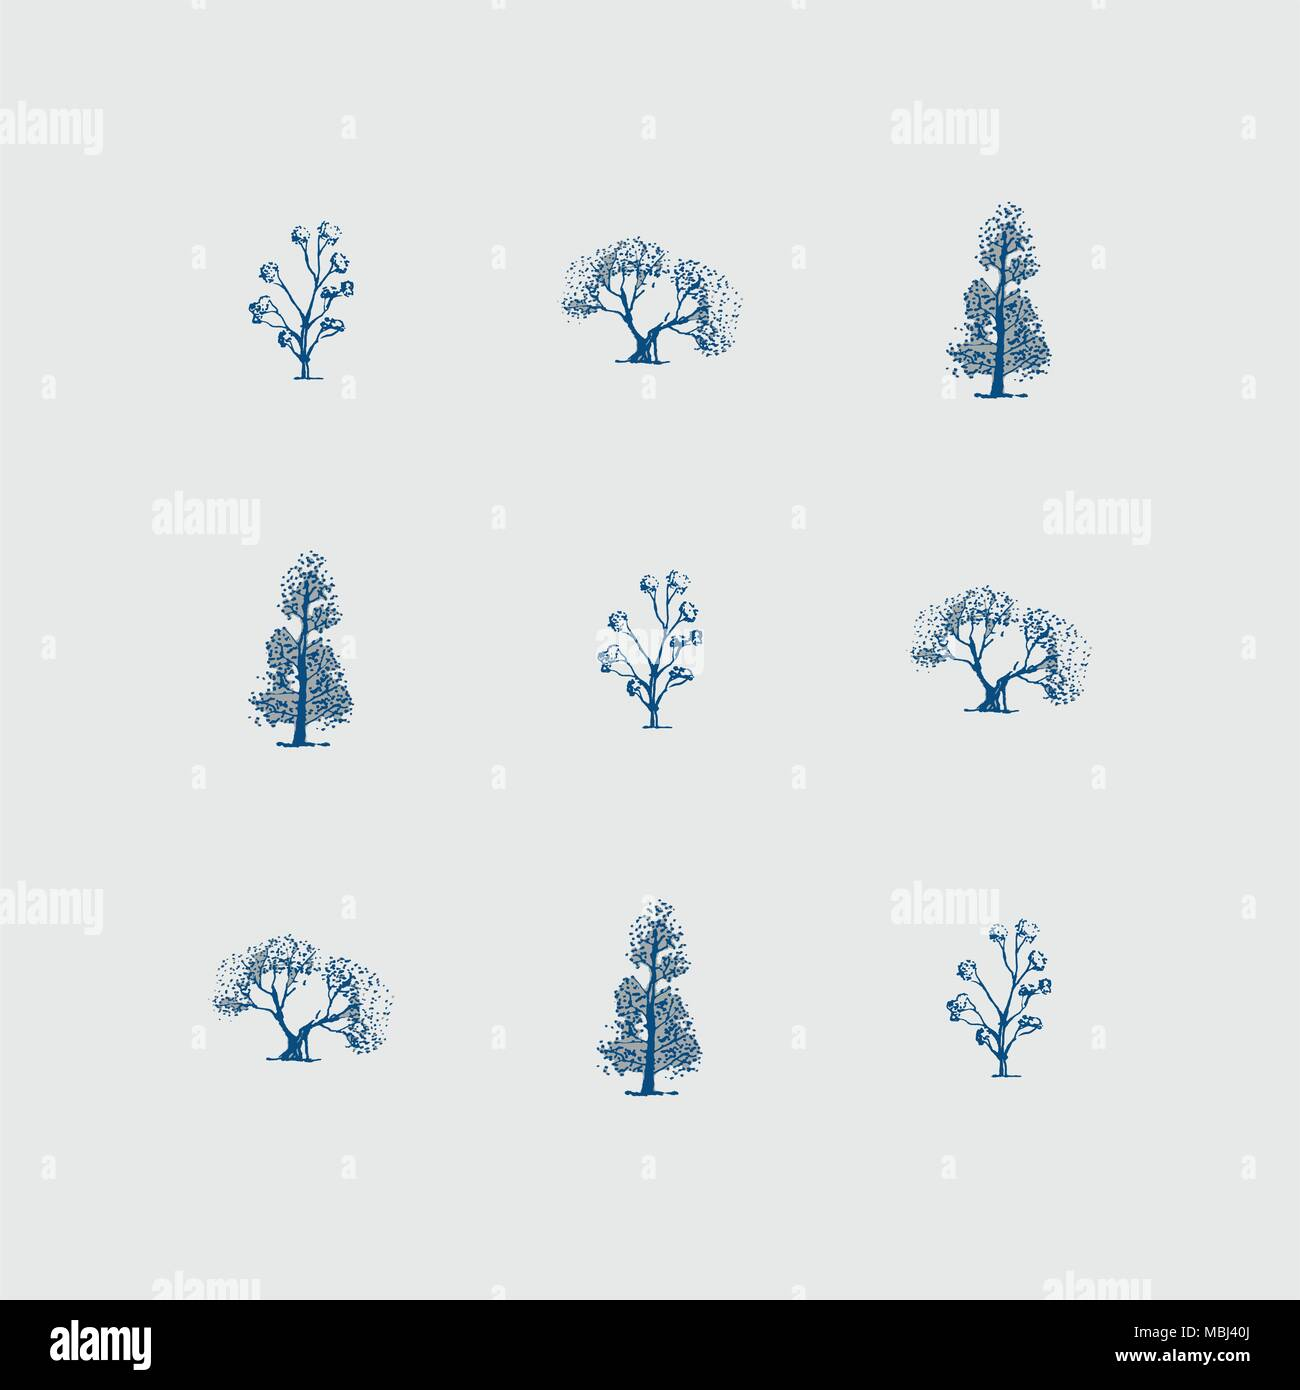 Little tree backgraund and print - Stock Image